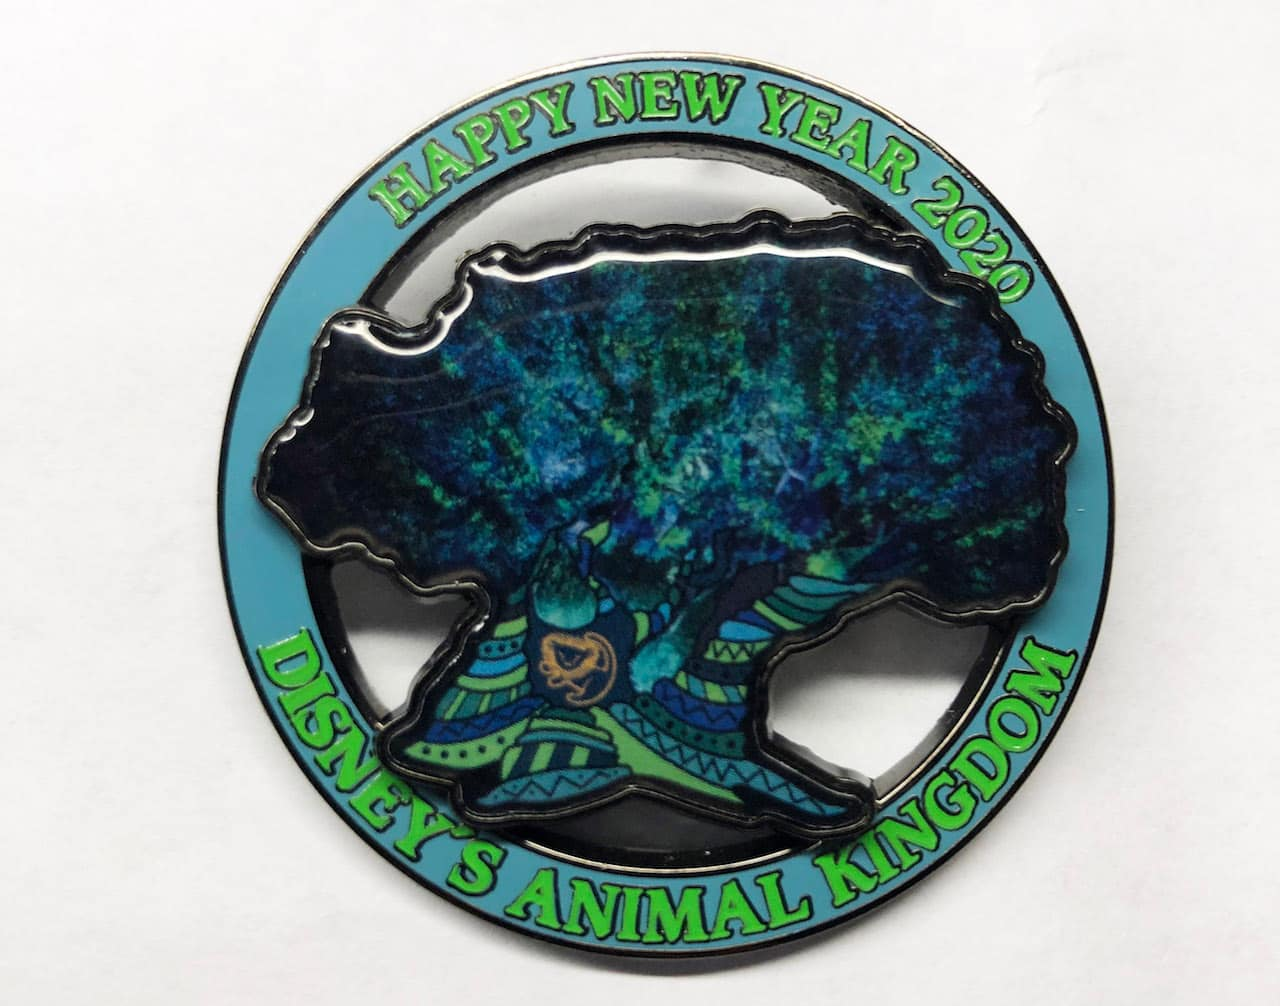 Limited Edition Animal Kingdom Pin 2020